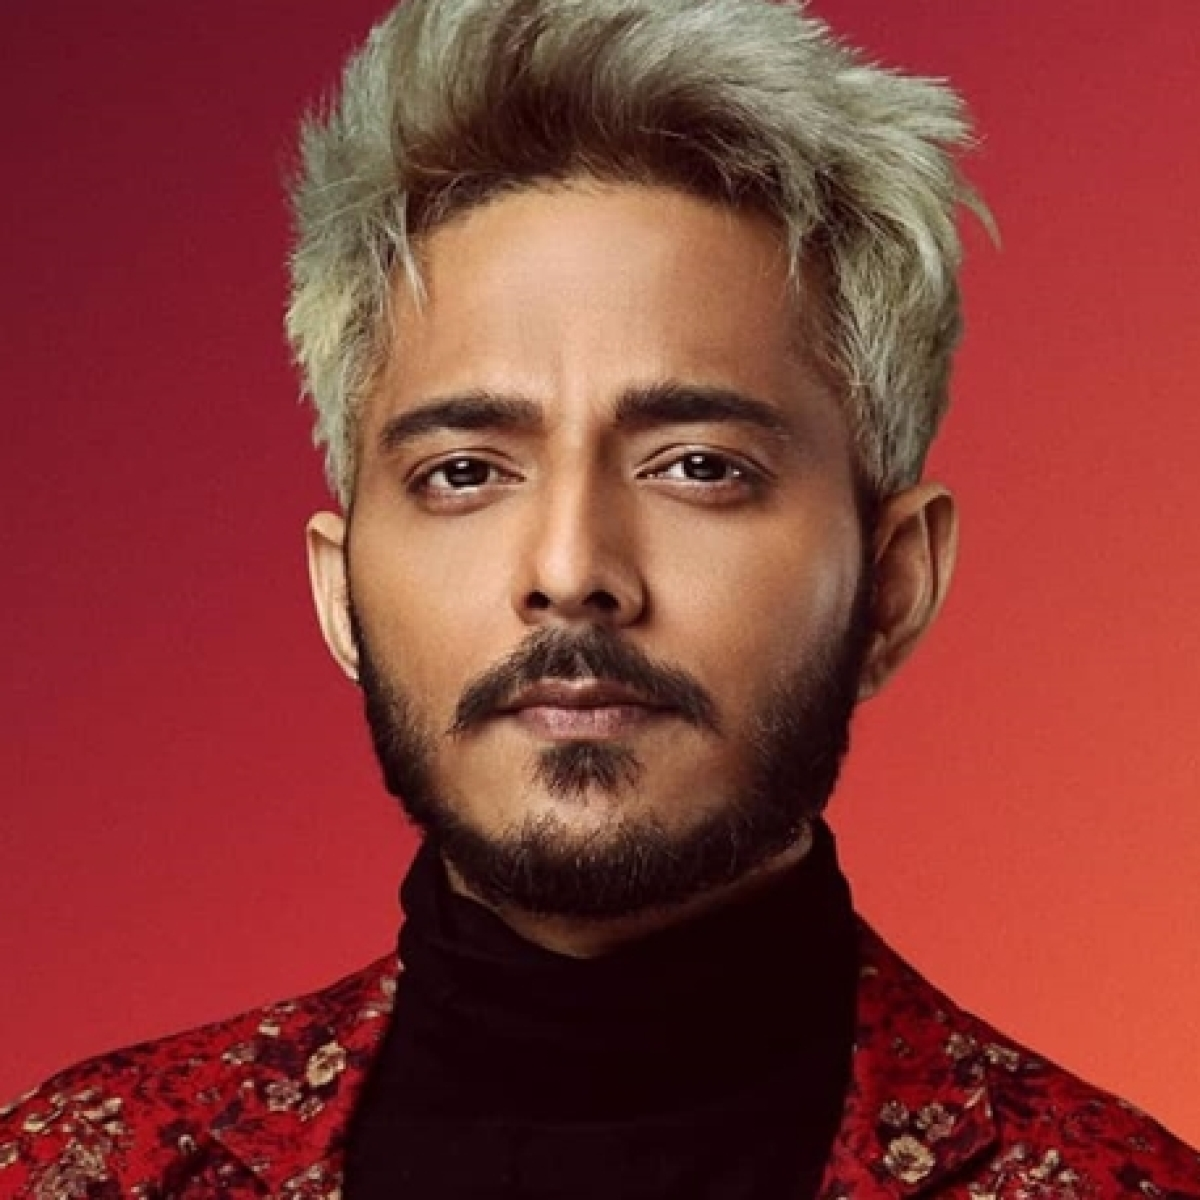 Masakali 2.0: Tanishk Bagchi's Wikipedia page edited, describes him as 'famous for ruining good melodies'